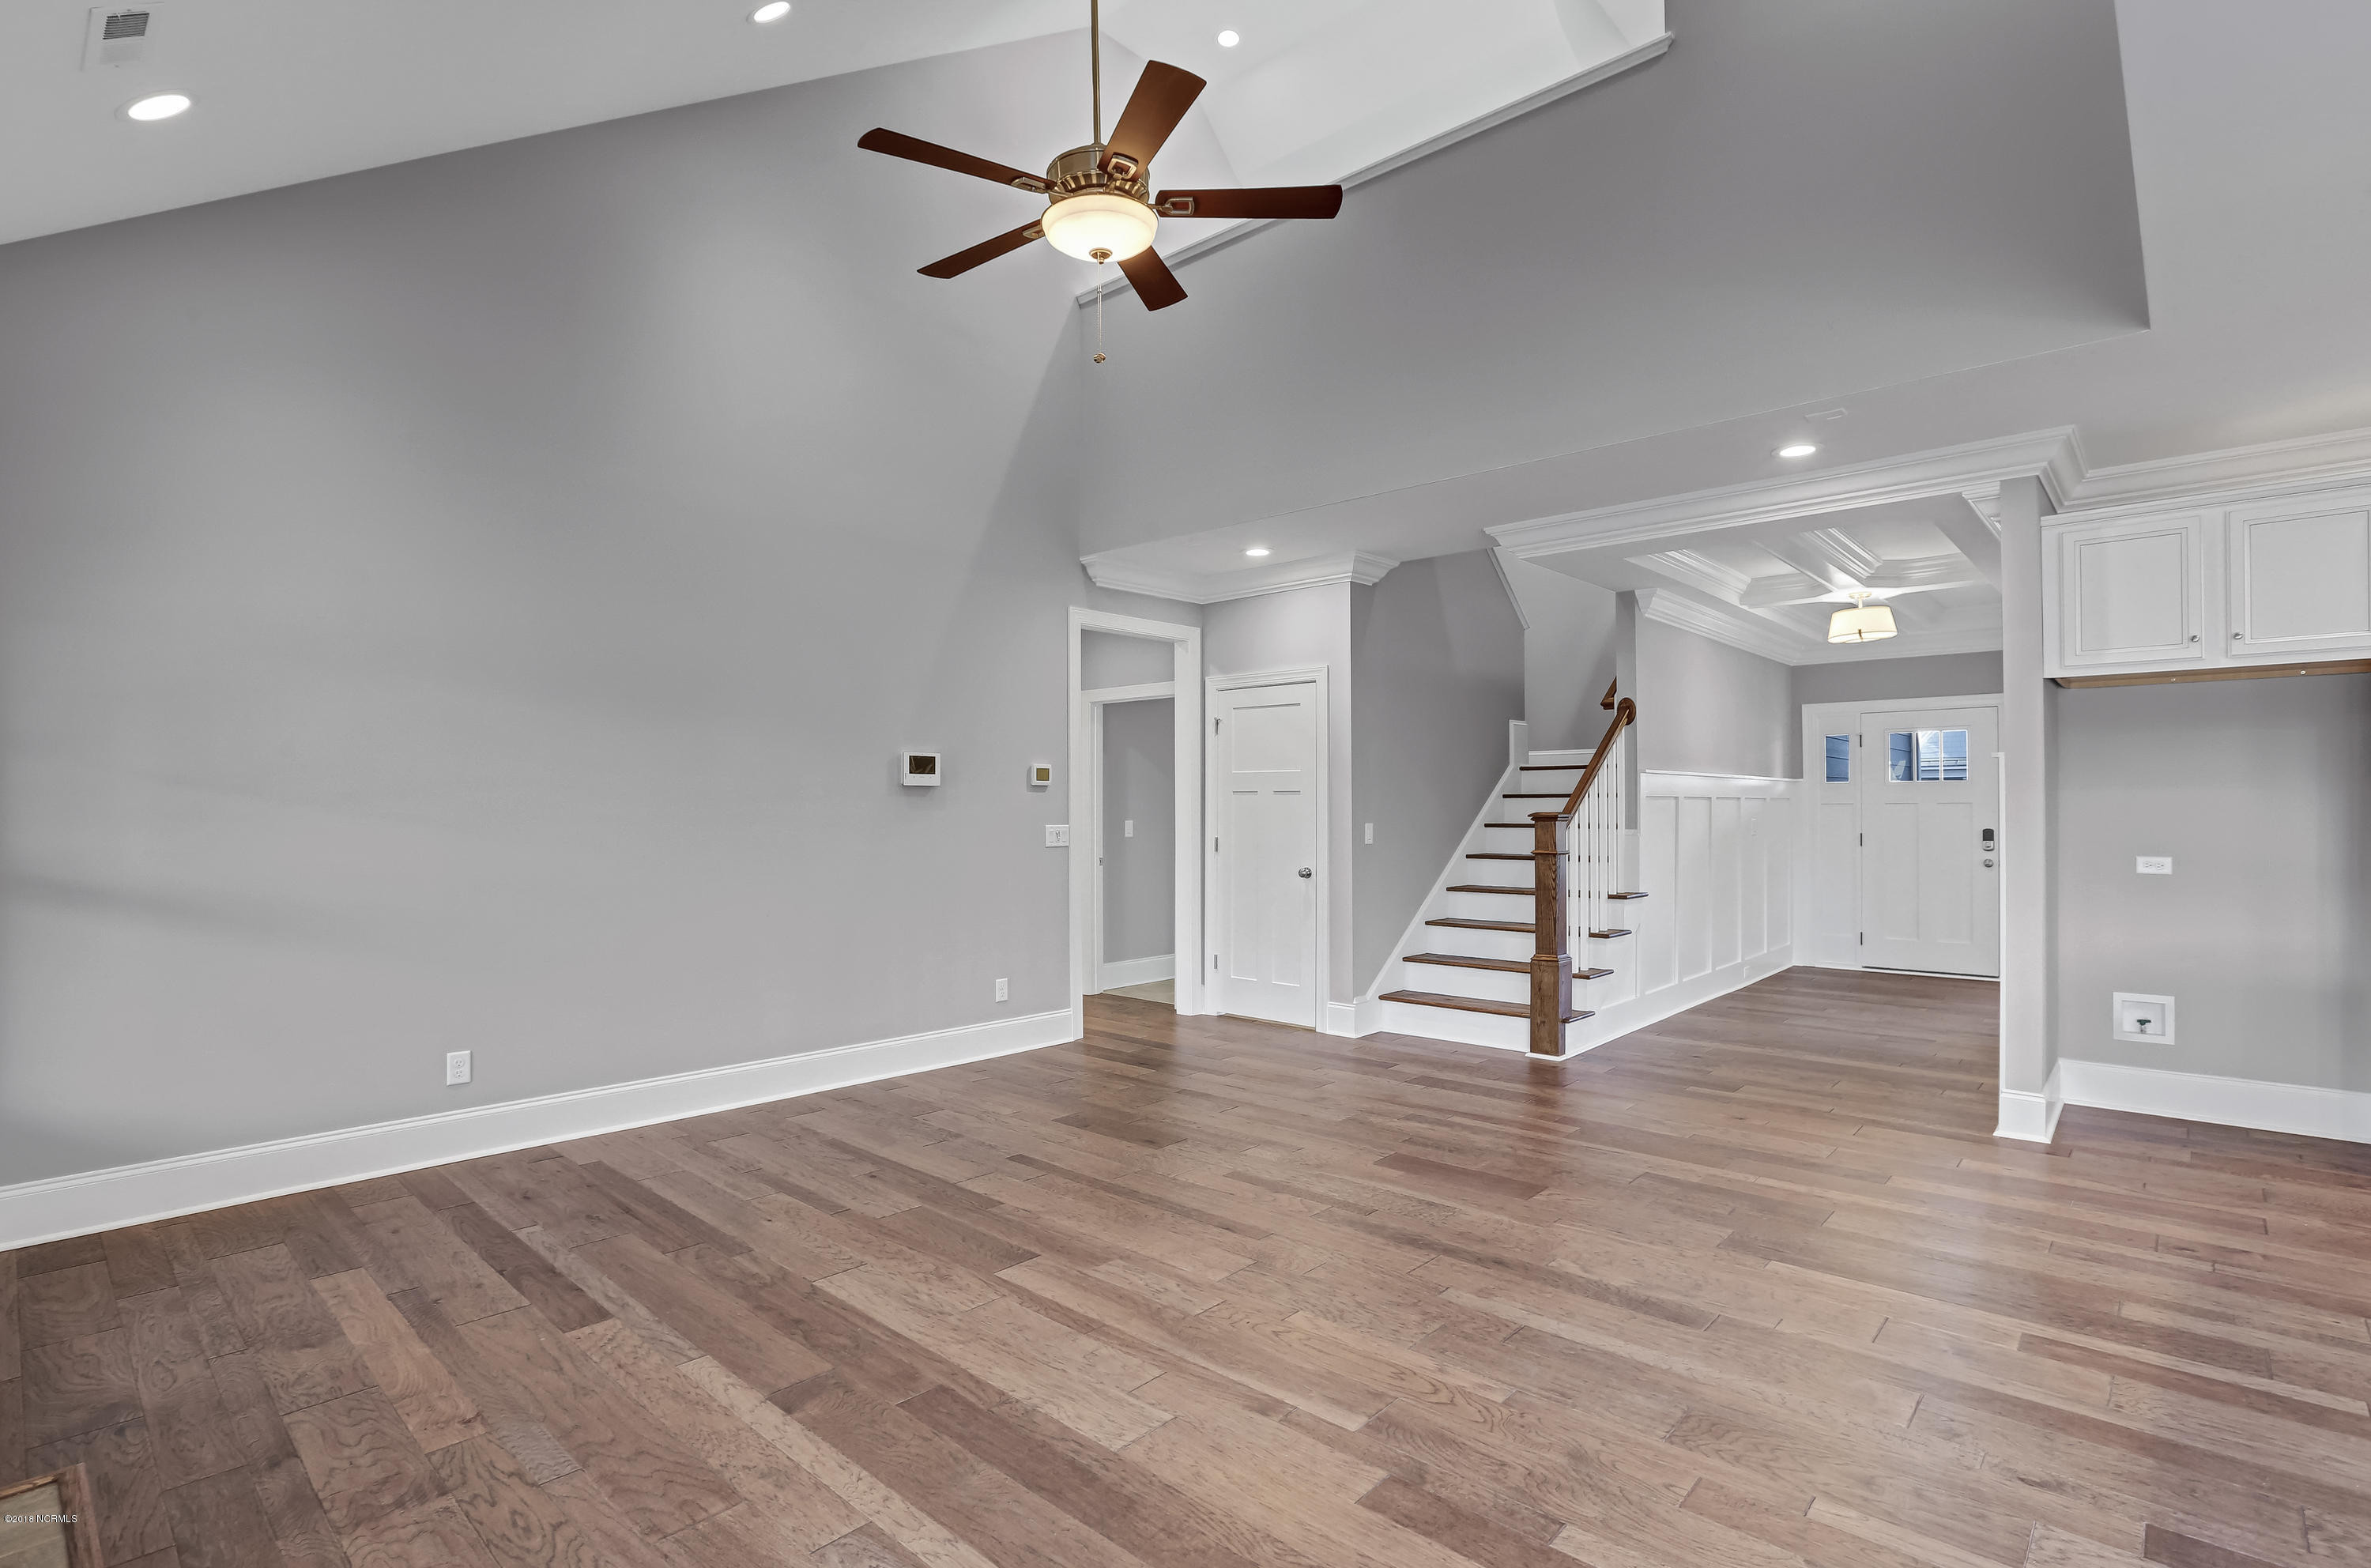 hardwood flooring company west hampstead of search sold buy the sea realty throughout the easton is a 3 bed 2 5 bath charmer with jack n jill setup on the 2nd floor this home has many custom level features such as a formal dining room w